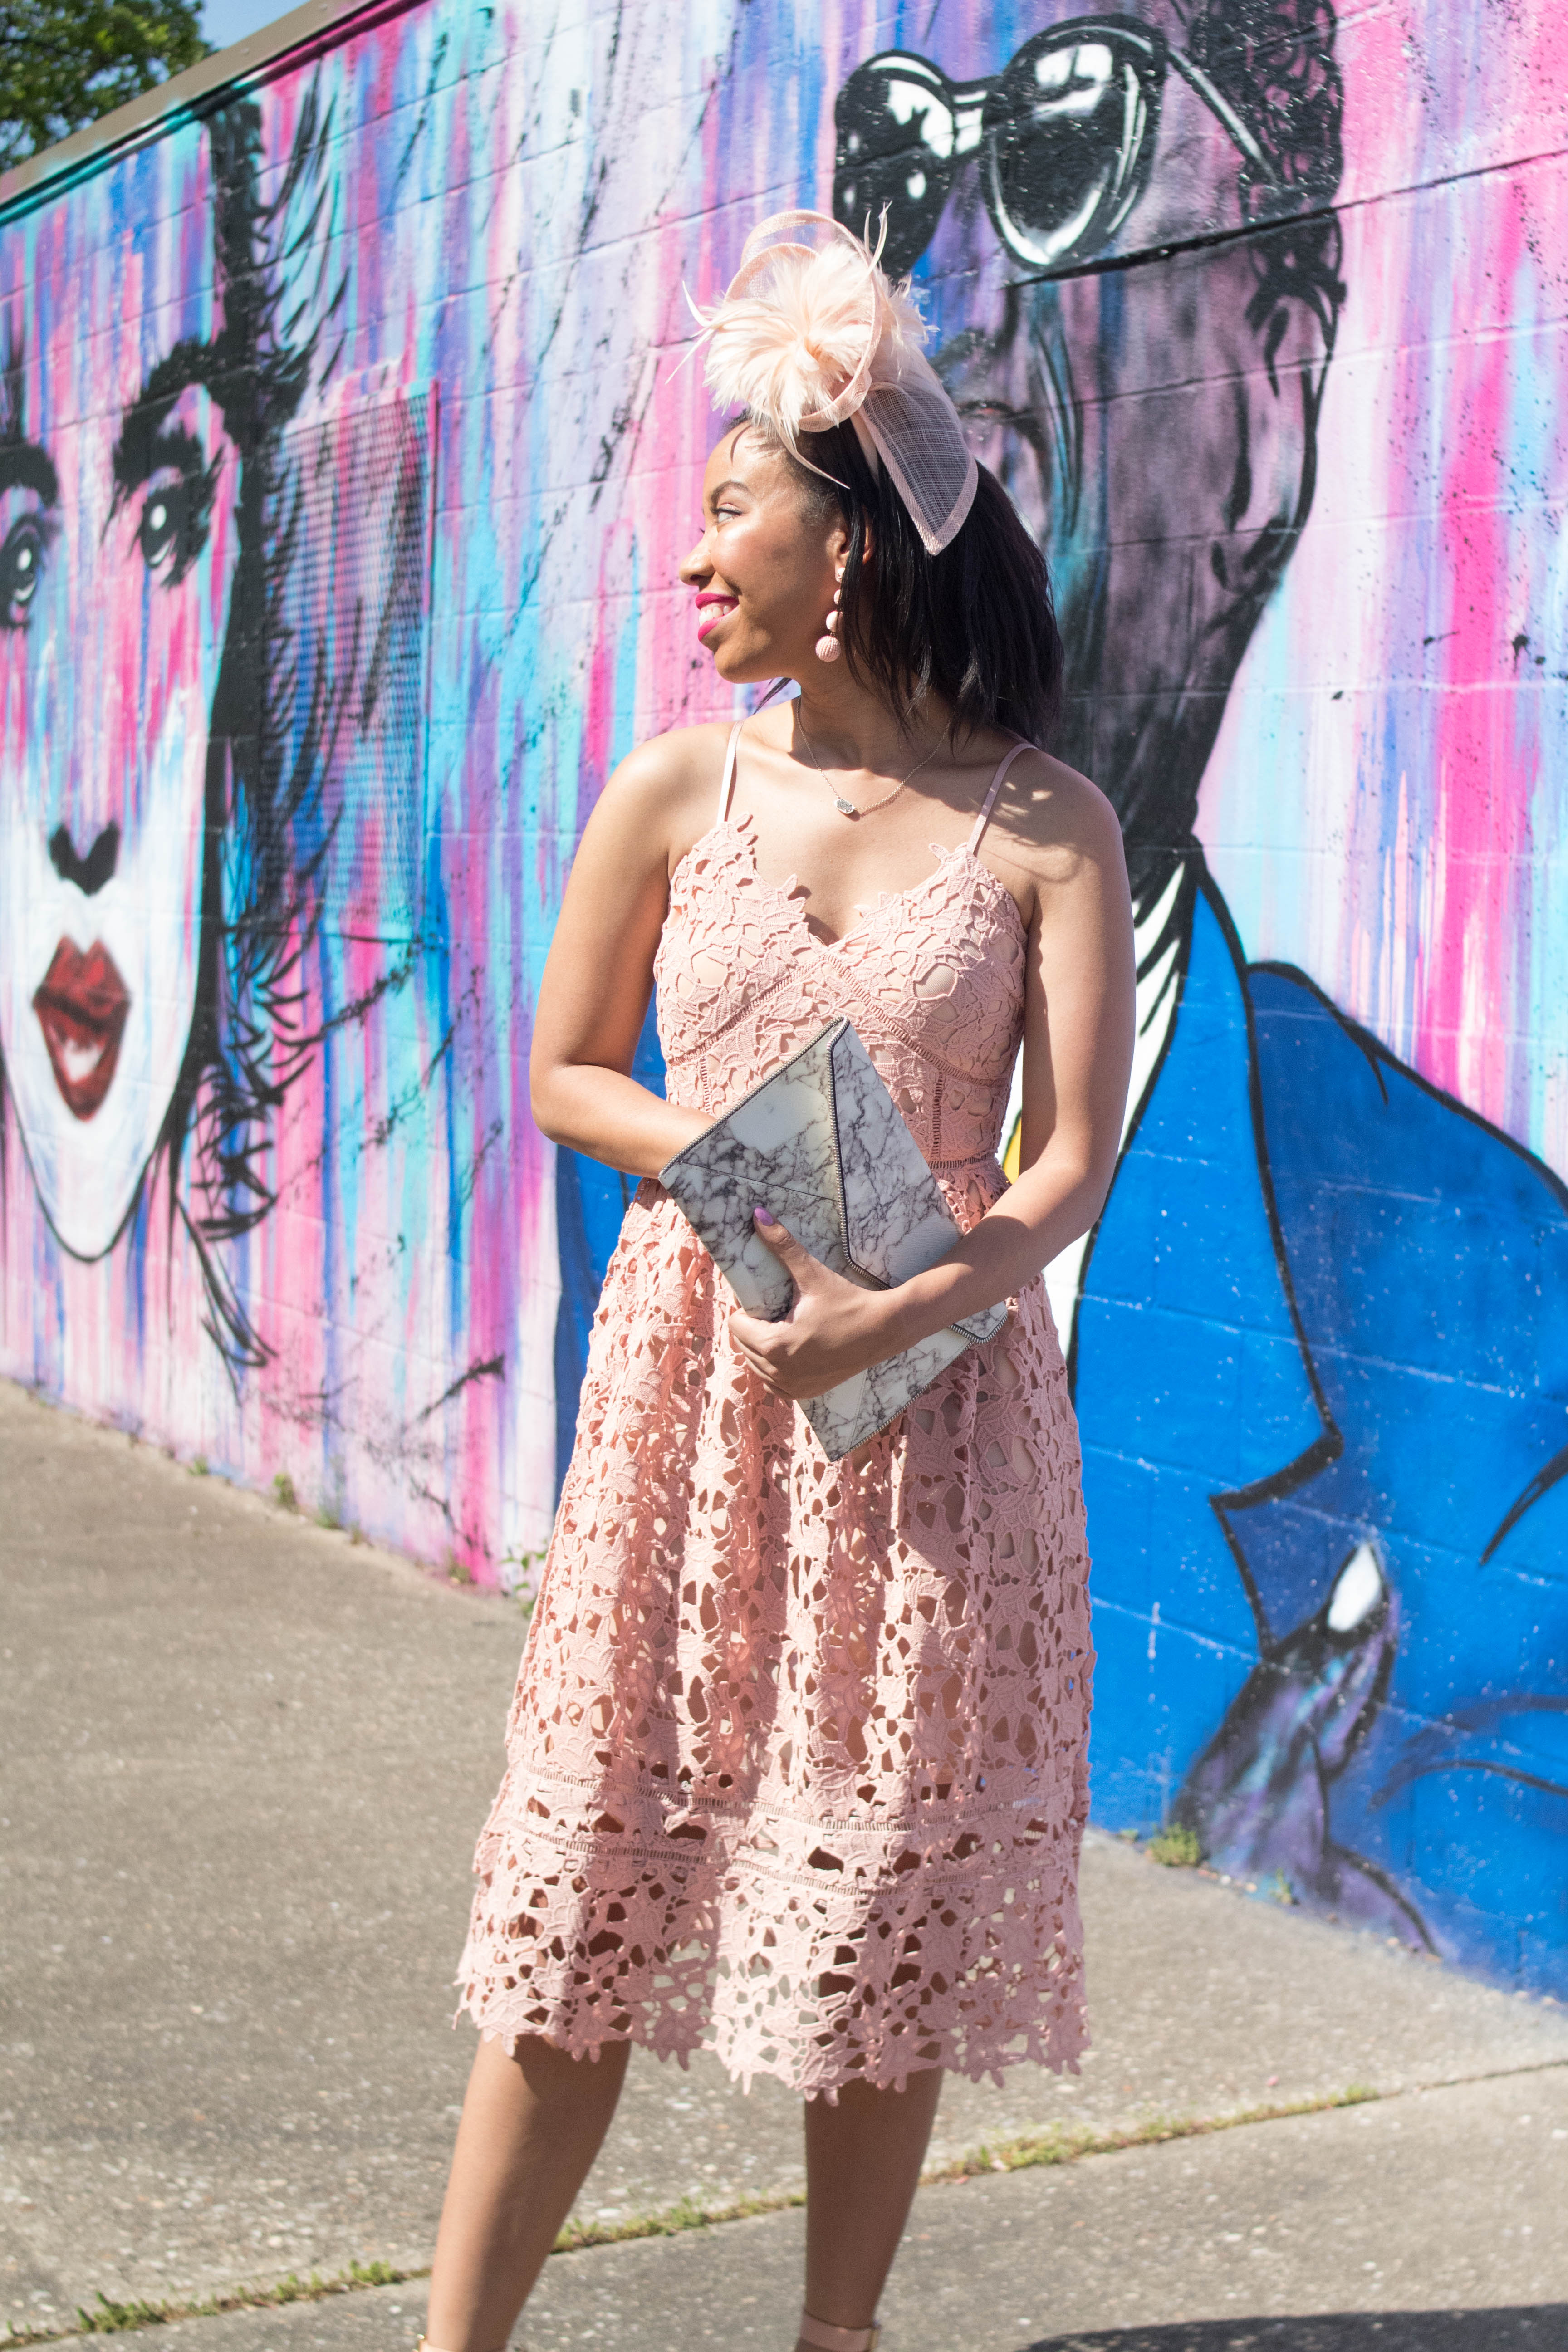 Make me blush! Kentucky blogger, What Nicole Wore, shares an outfit for Churchill Downs that's perfect for Kentucky Derby, Oaks, or Thurby! // rebecca minkoff leo clutch, wedding guest dress, kentucky derby party ideas, what to wear kentucky derby